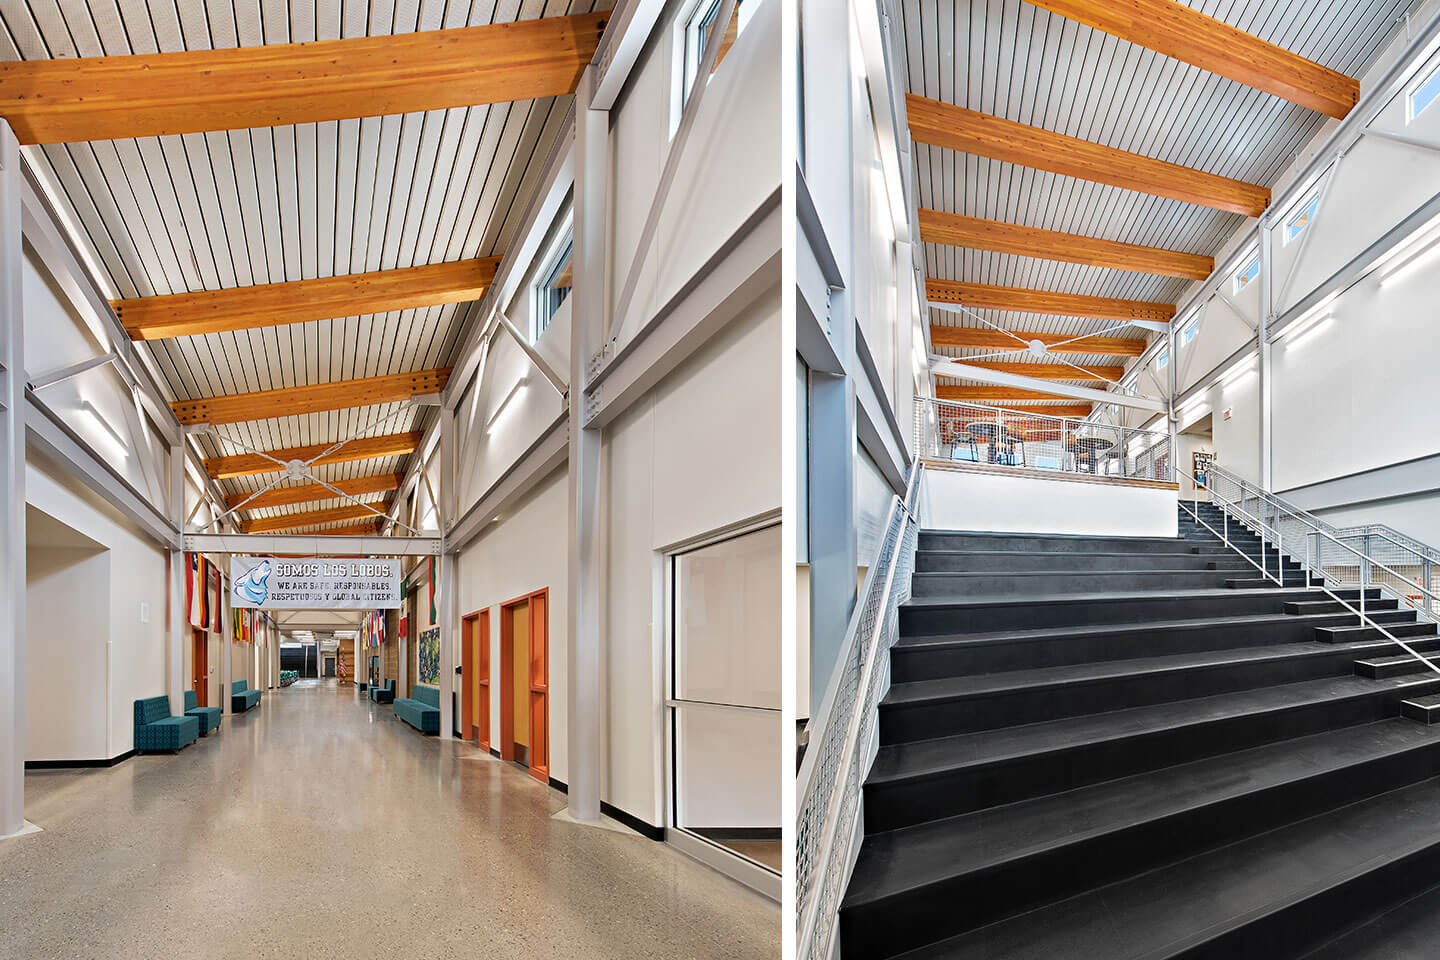 School hallway and staircase-bleachers